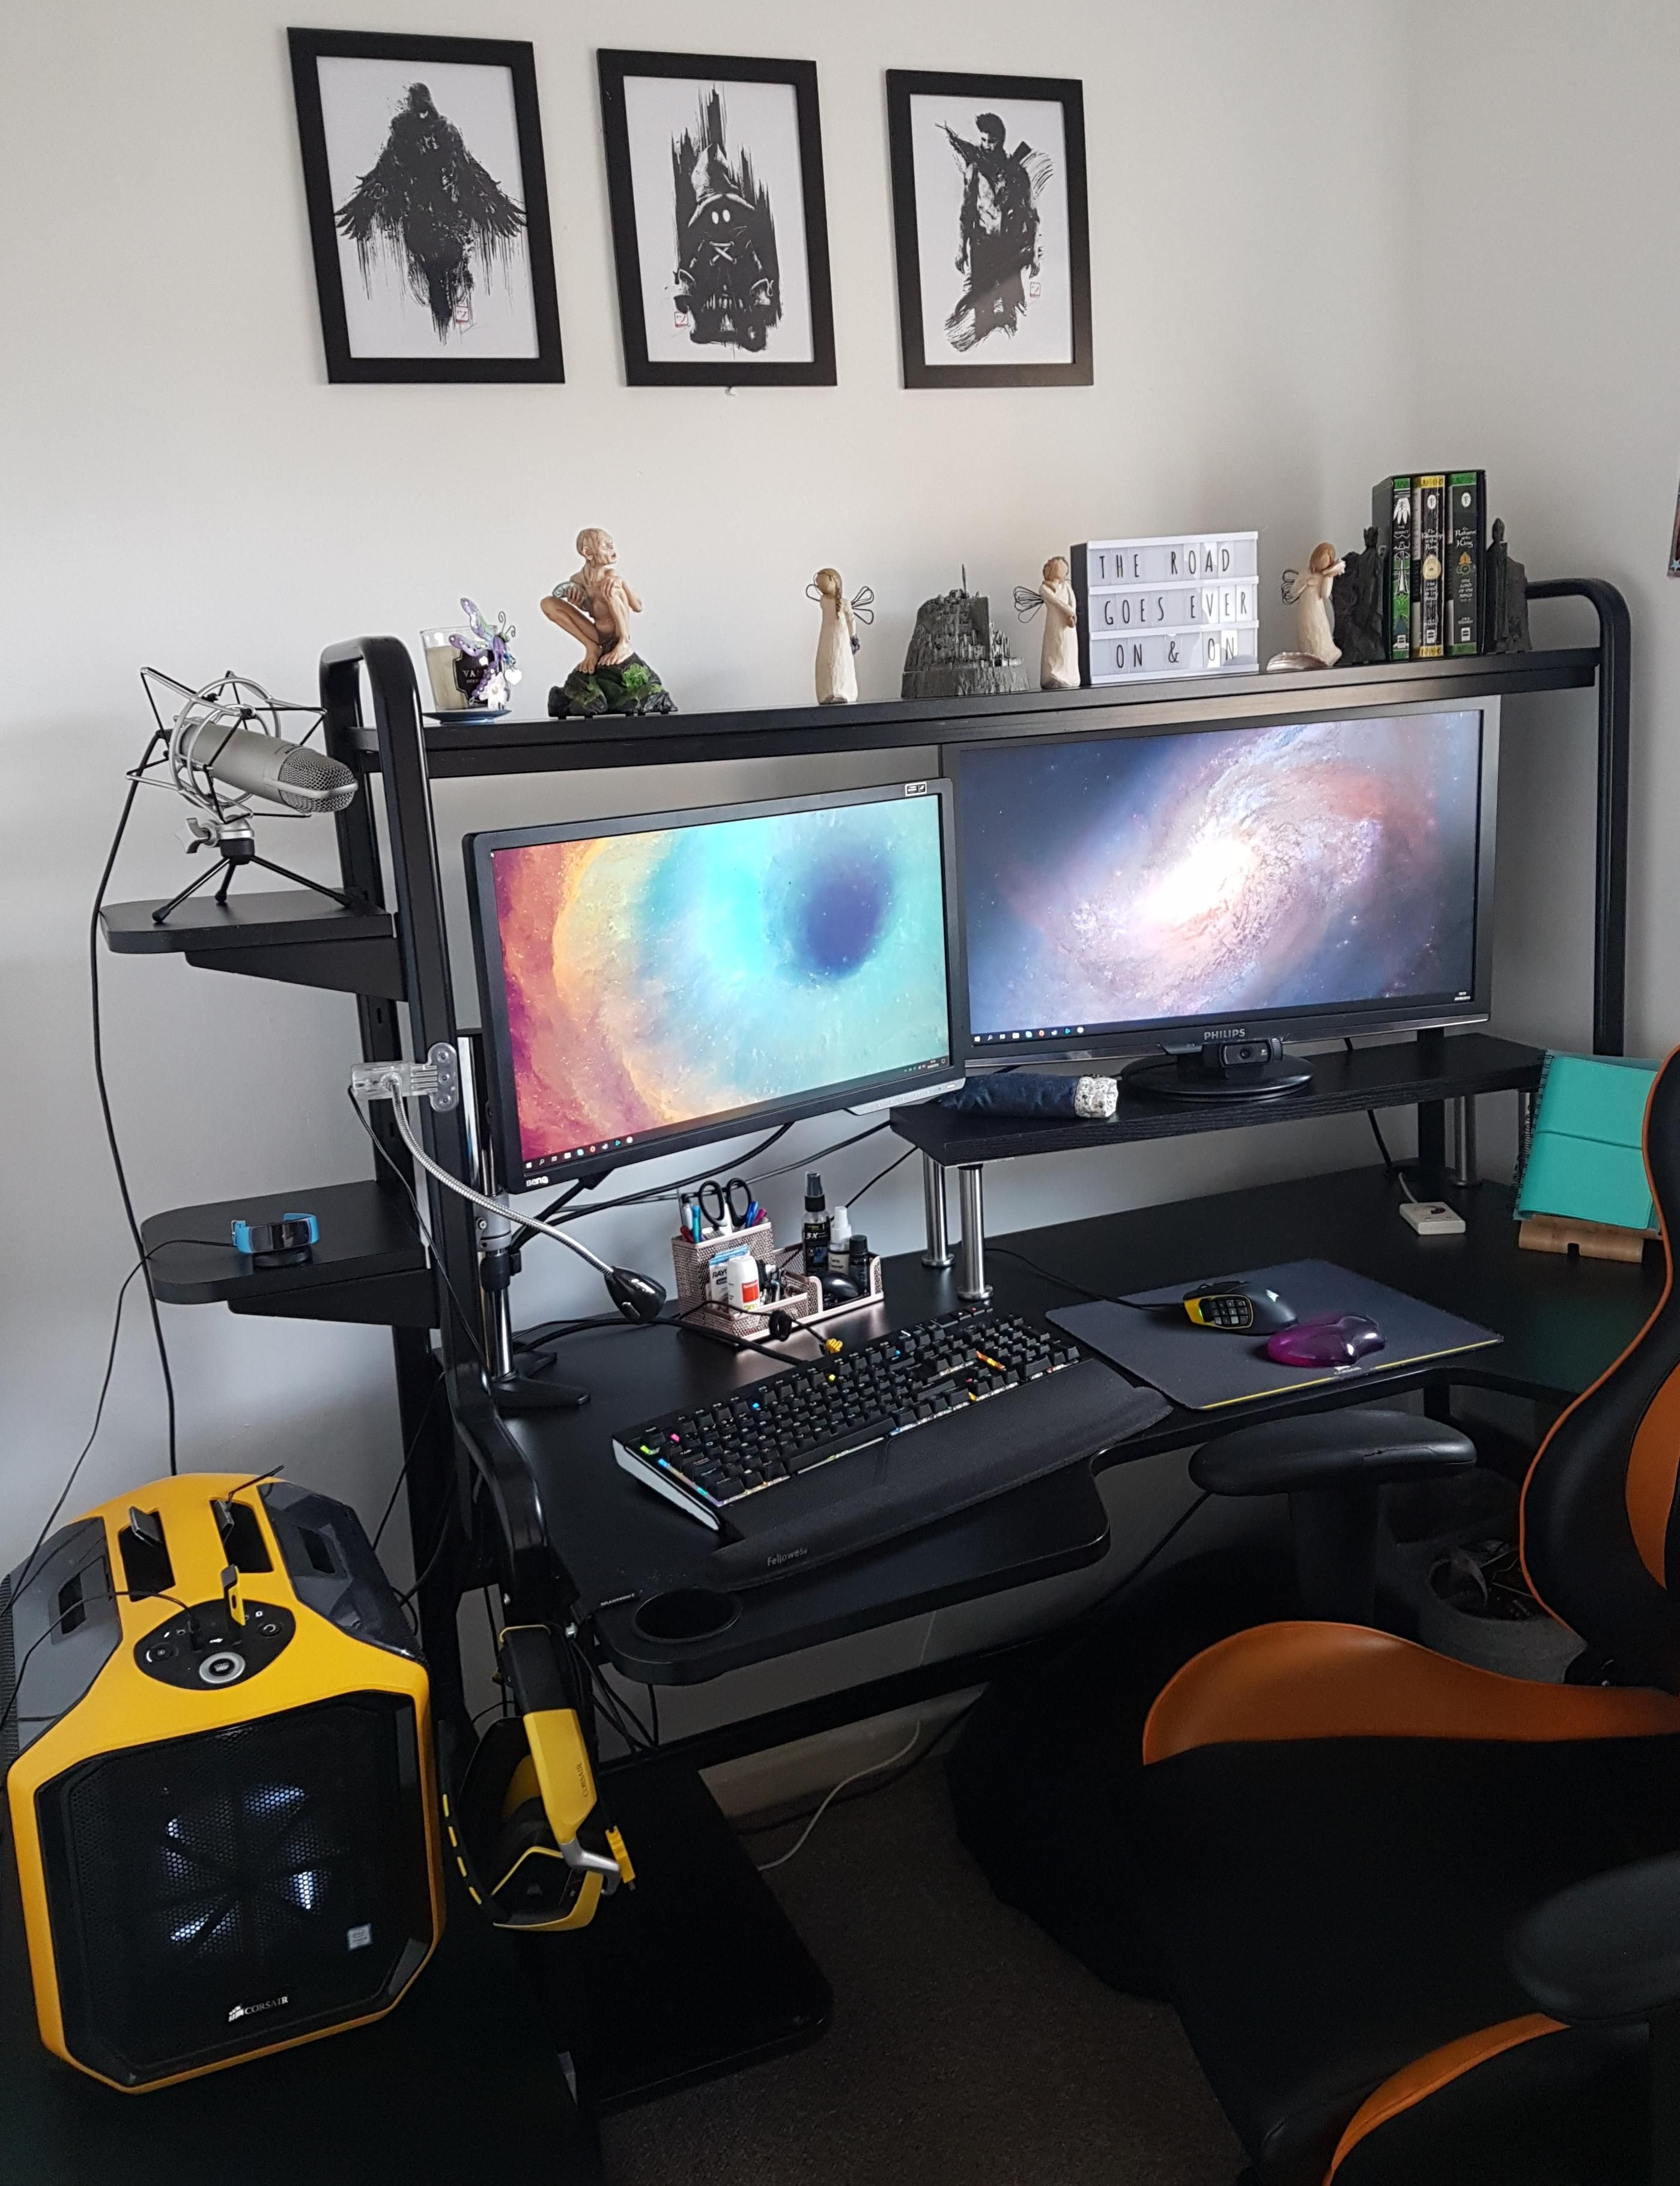 Rather happy with my setup after moving house Gaming